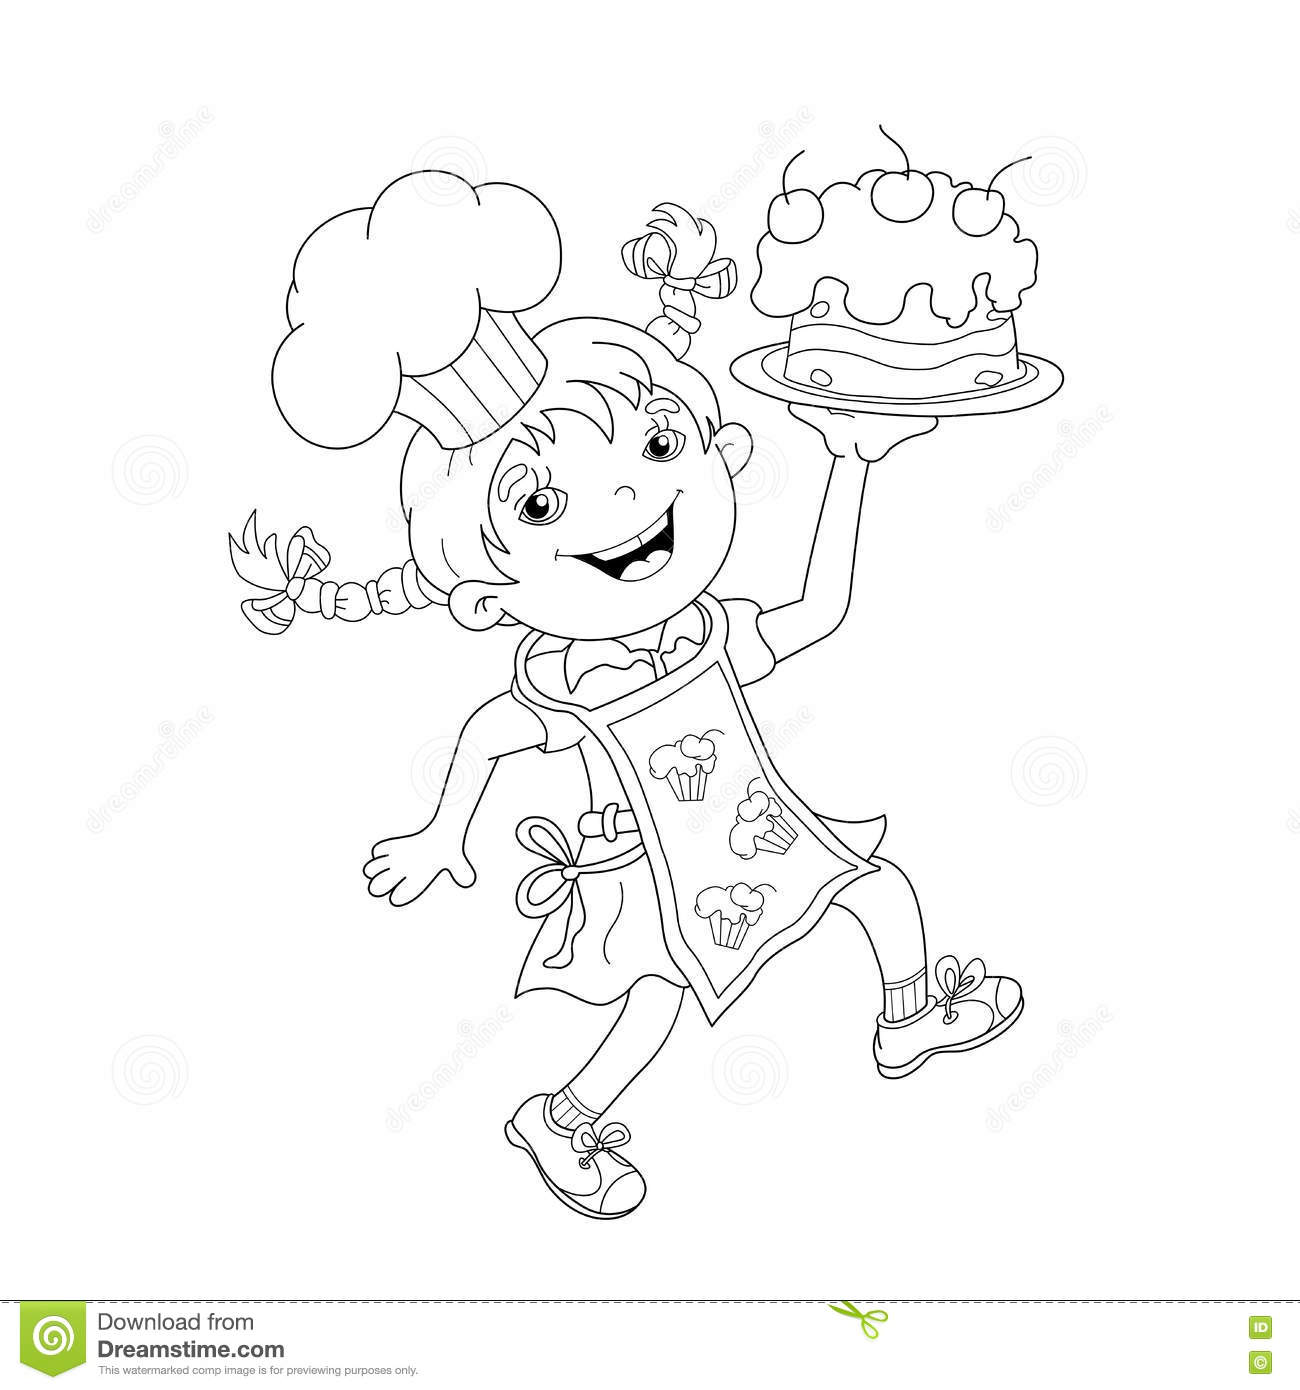 Coloring Page Outline Of Cartoon Girl Chef With Cake Stock Vector